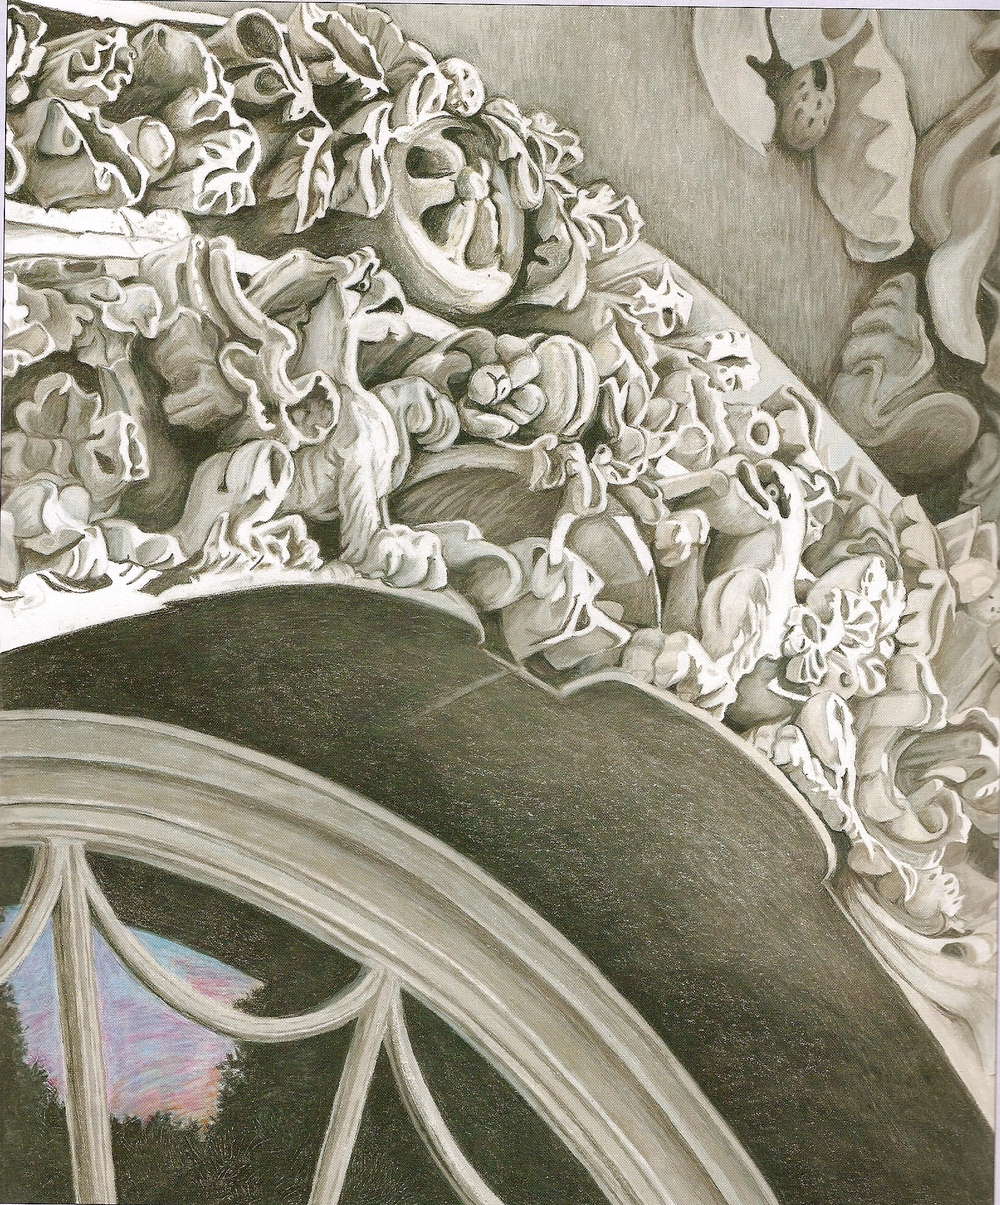 Illustration of arch over the front door at the White House done by Mary Brigid Barrett in colored pencils.        Normal   0           false   false   false     EN-US   X-NONE   X-NONE                                                                                ©                                                                                                                                                                                                                                                                                                 2008 Mary Brigid Barrett; Candlewick Press Publishing